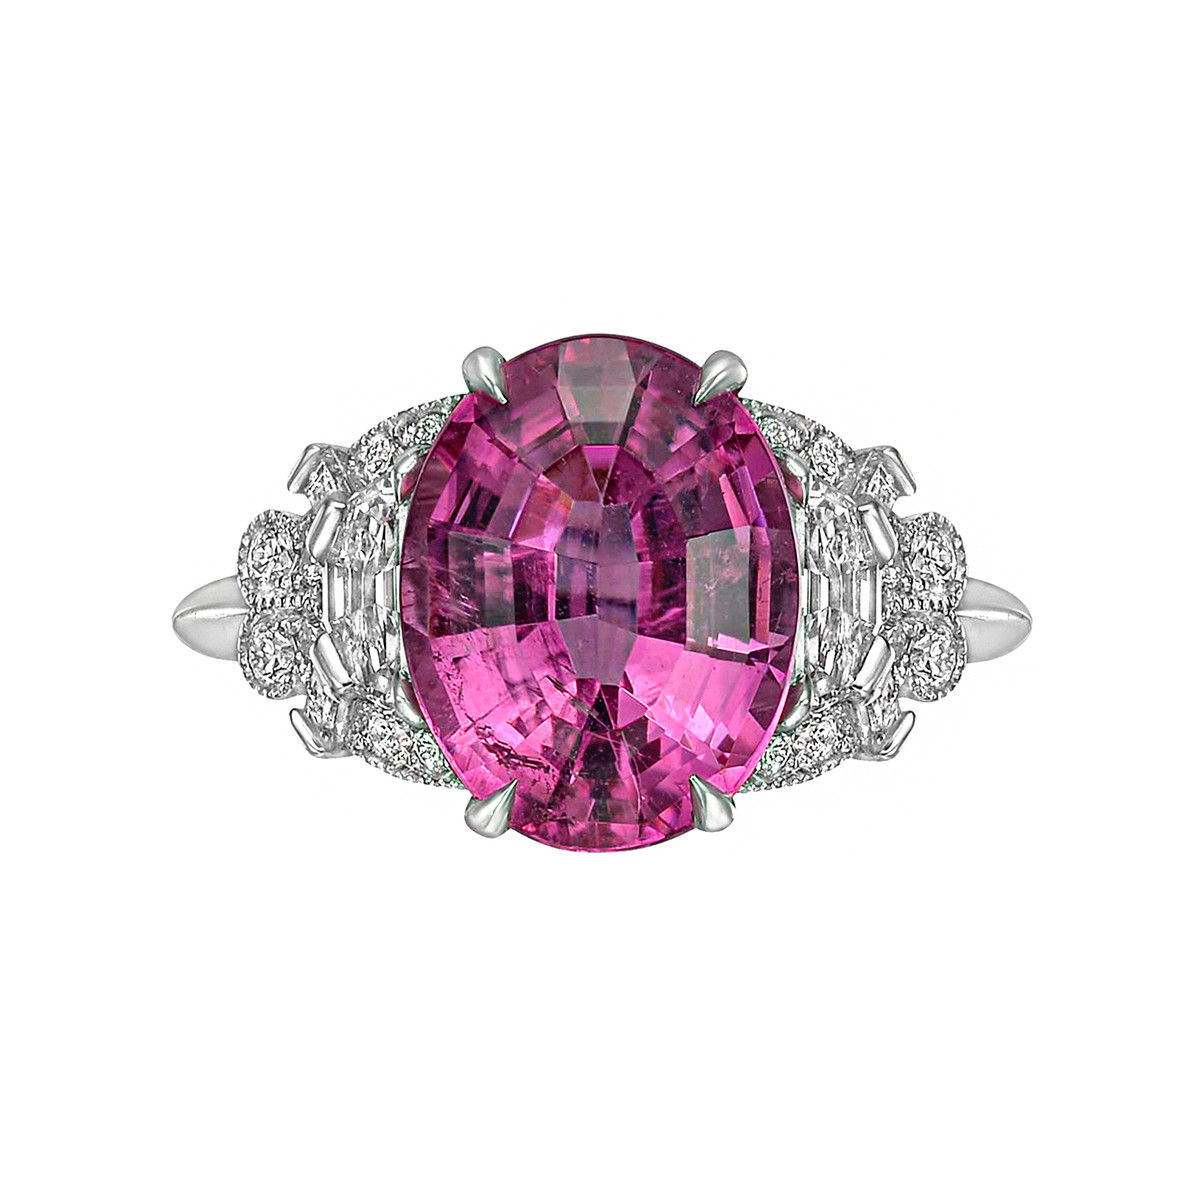 4.17ct Pink Tourmaline & Diamond Cocktail Ring